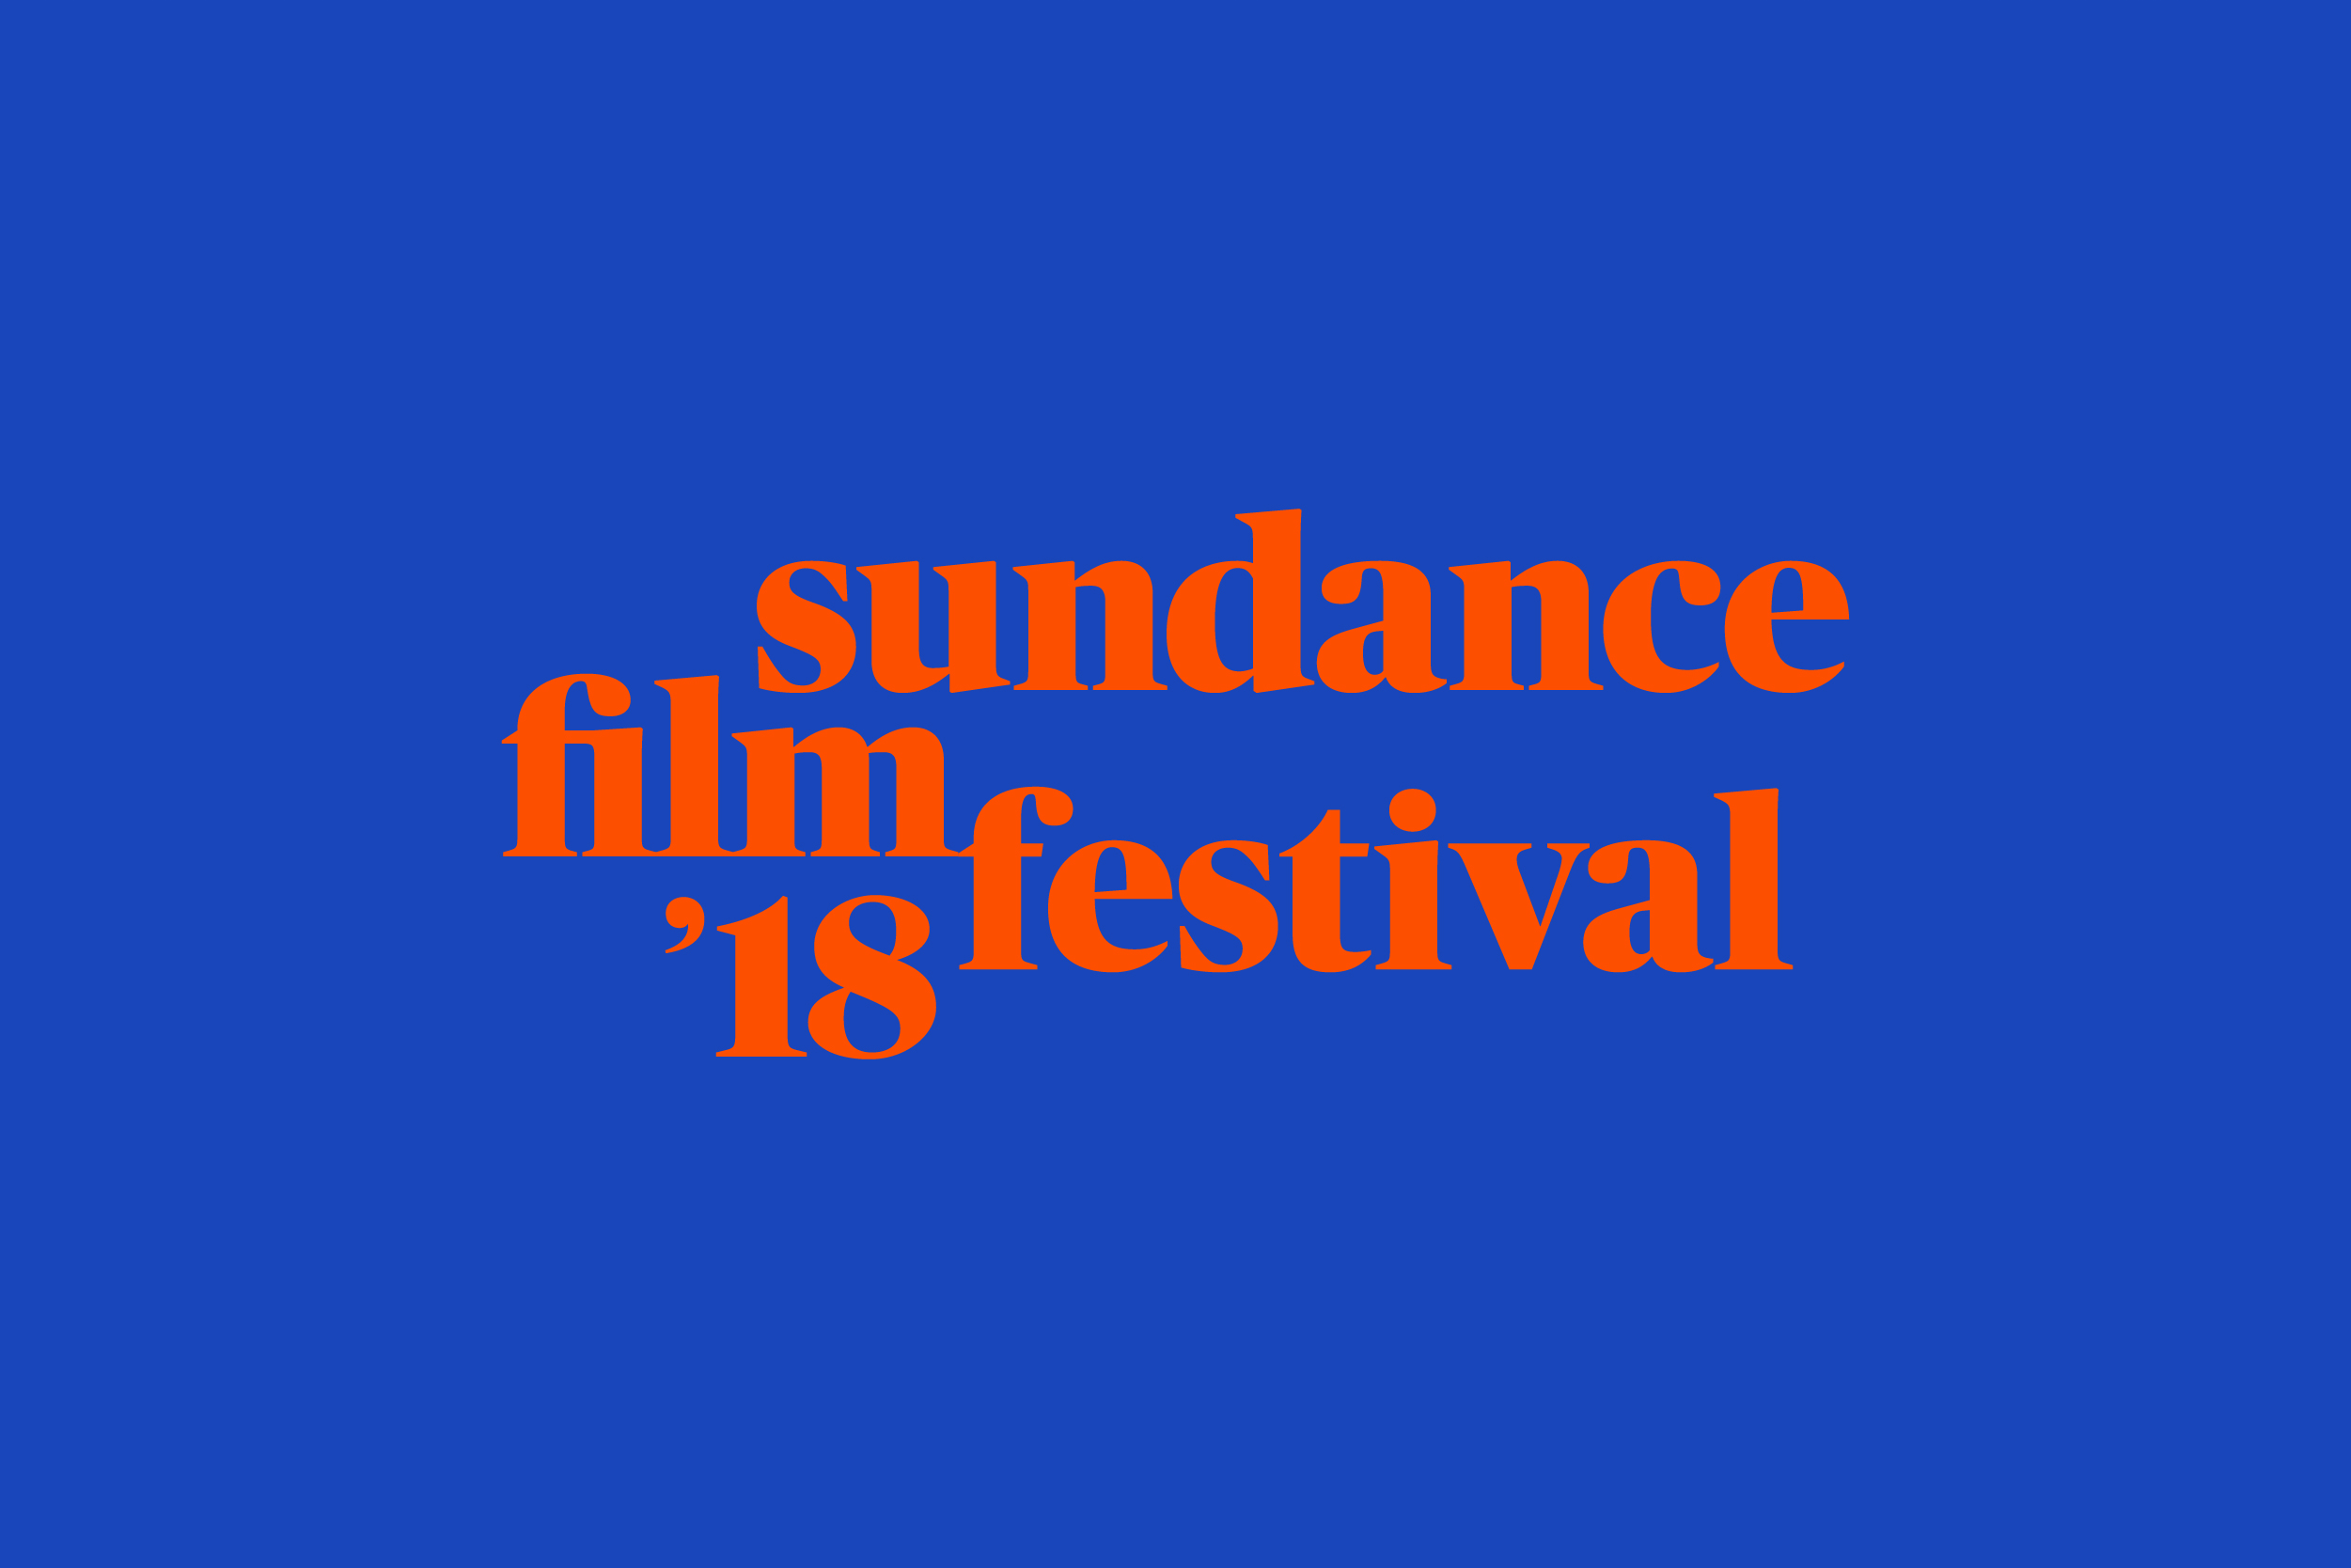 The Happy Prince will premiere at the 2018 Sundance Film Festival